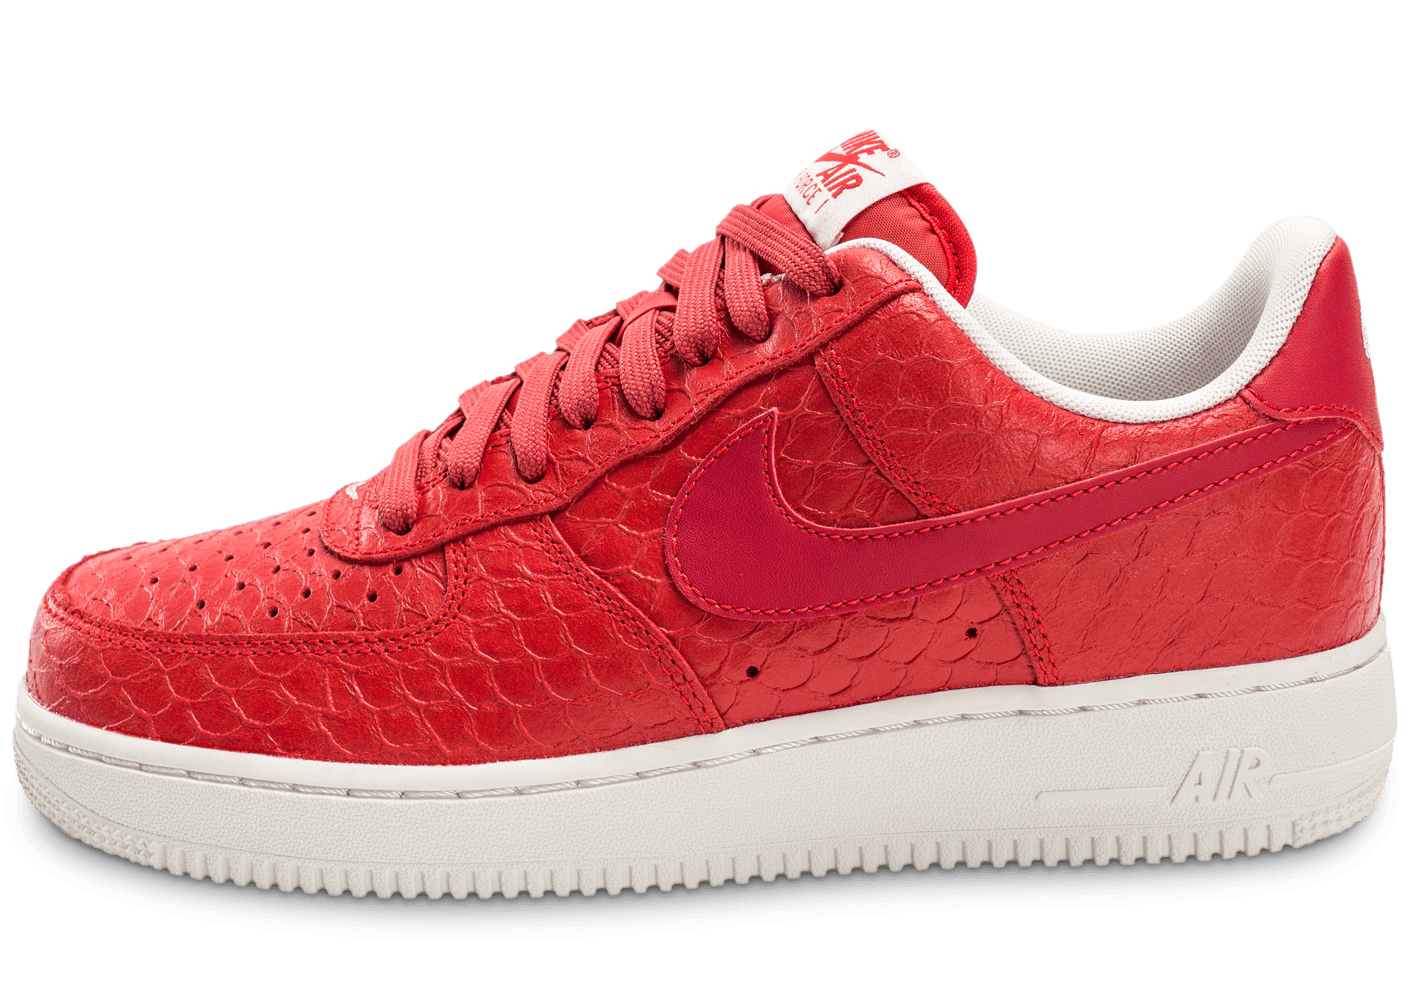 air force one nike rouge,air force 1 blanche et rouge homme